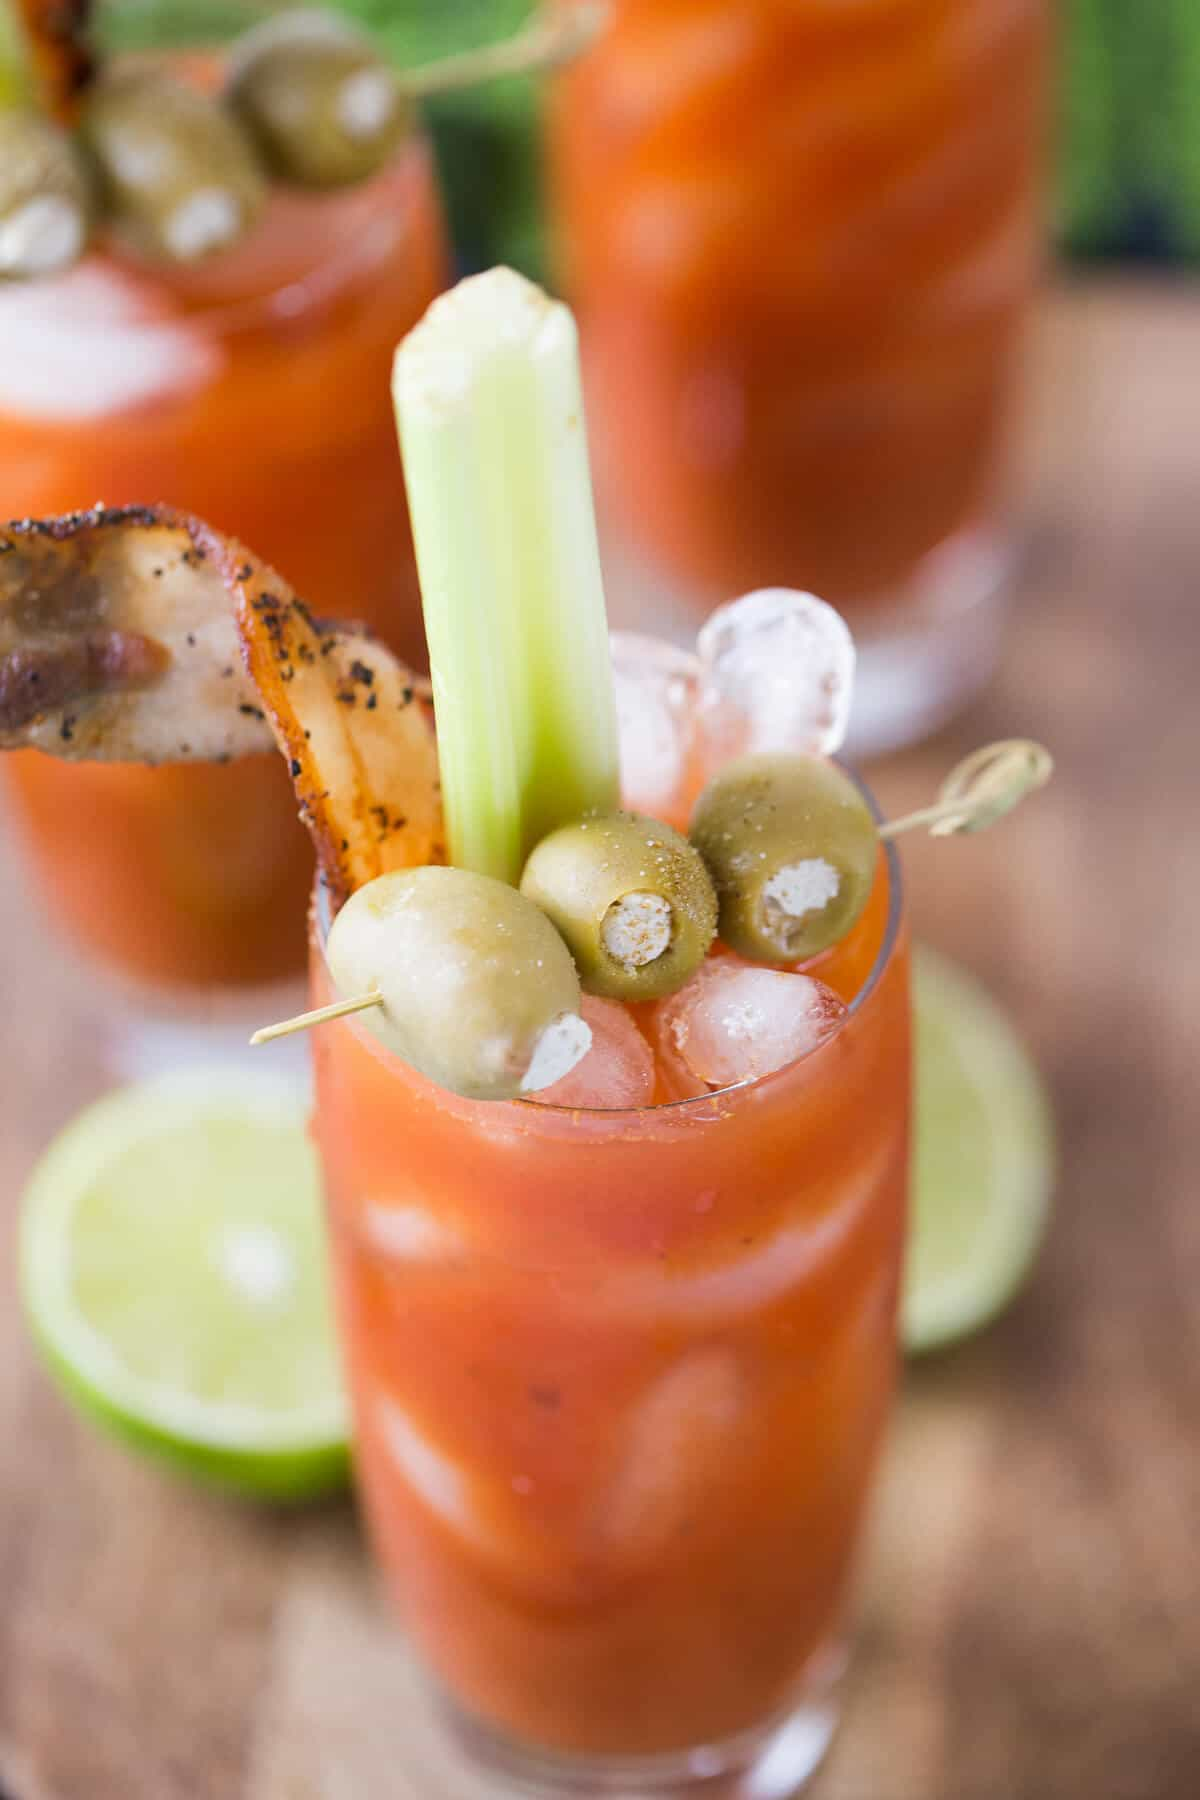 Who's a fan of Bloody Mary's? This cocktail is for those who like a little spice! lemonsforlulu.com